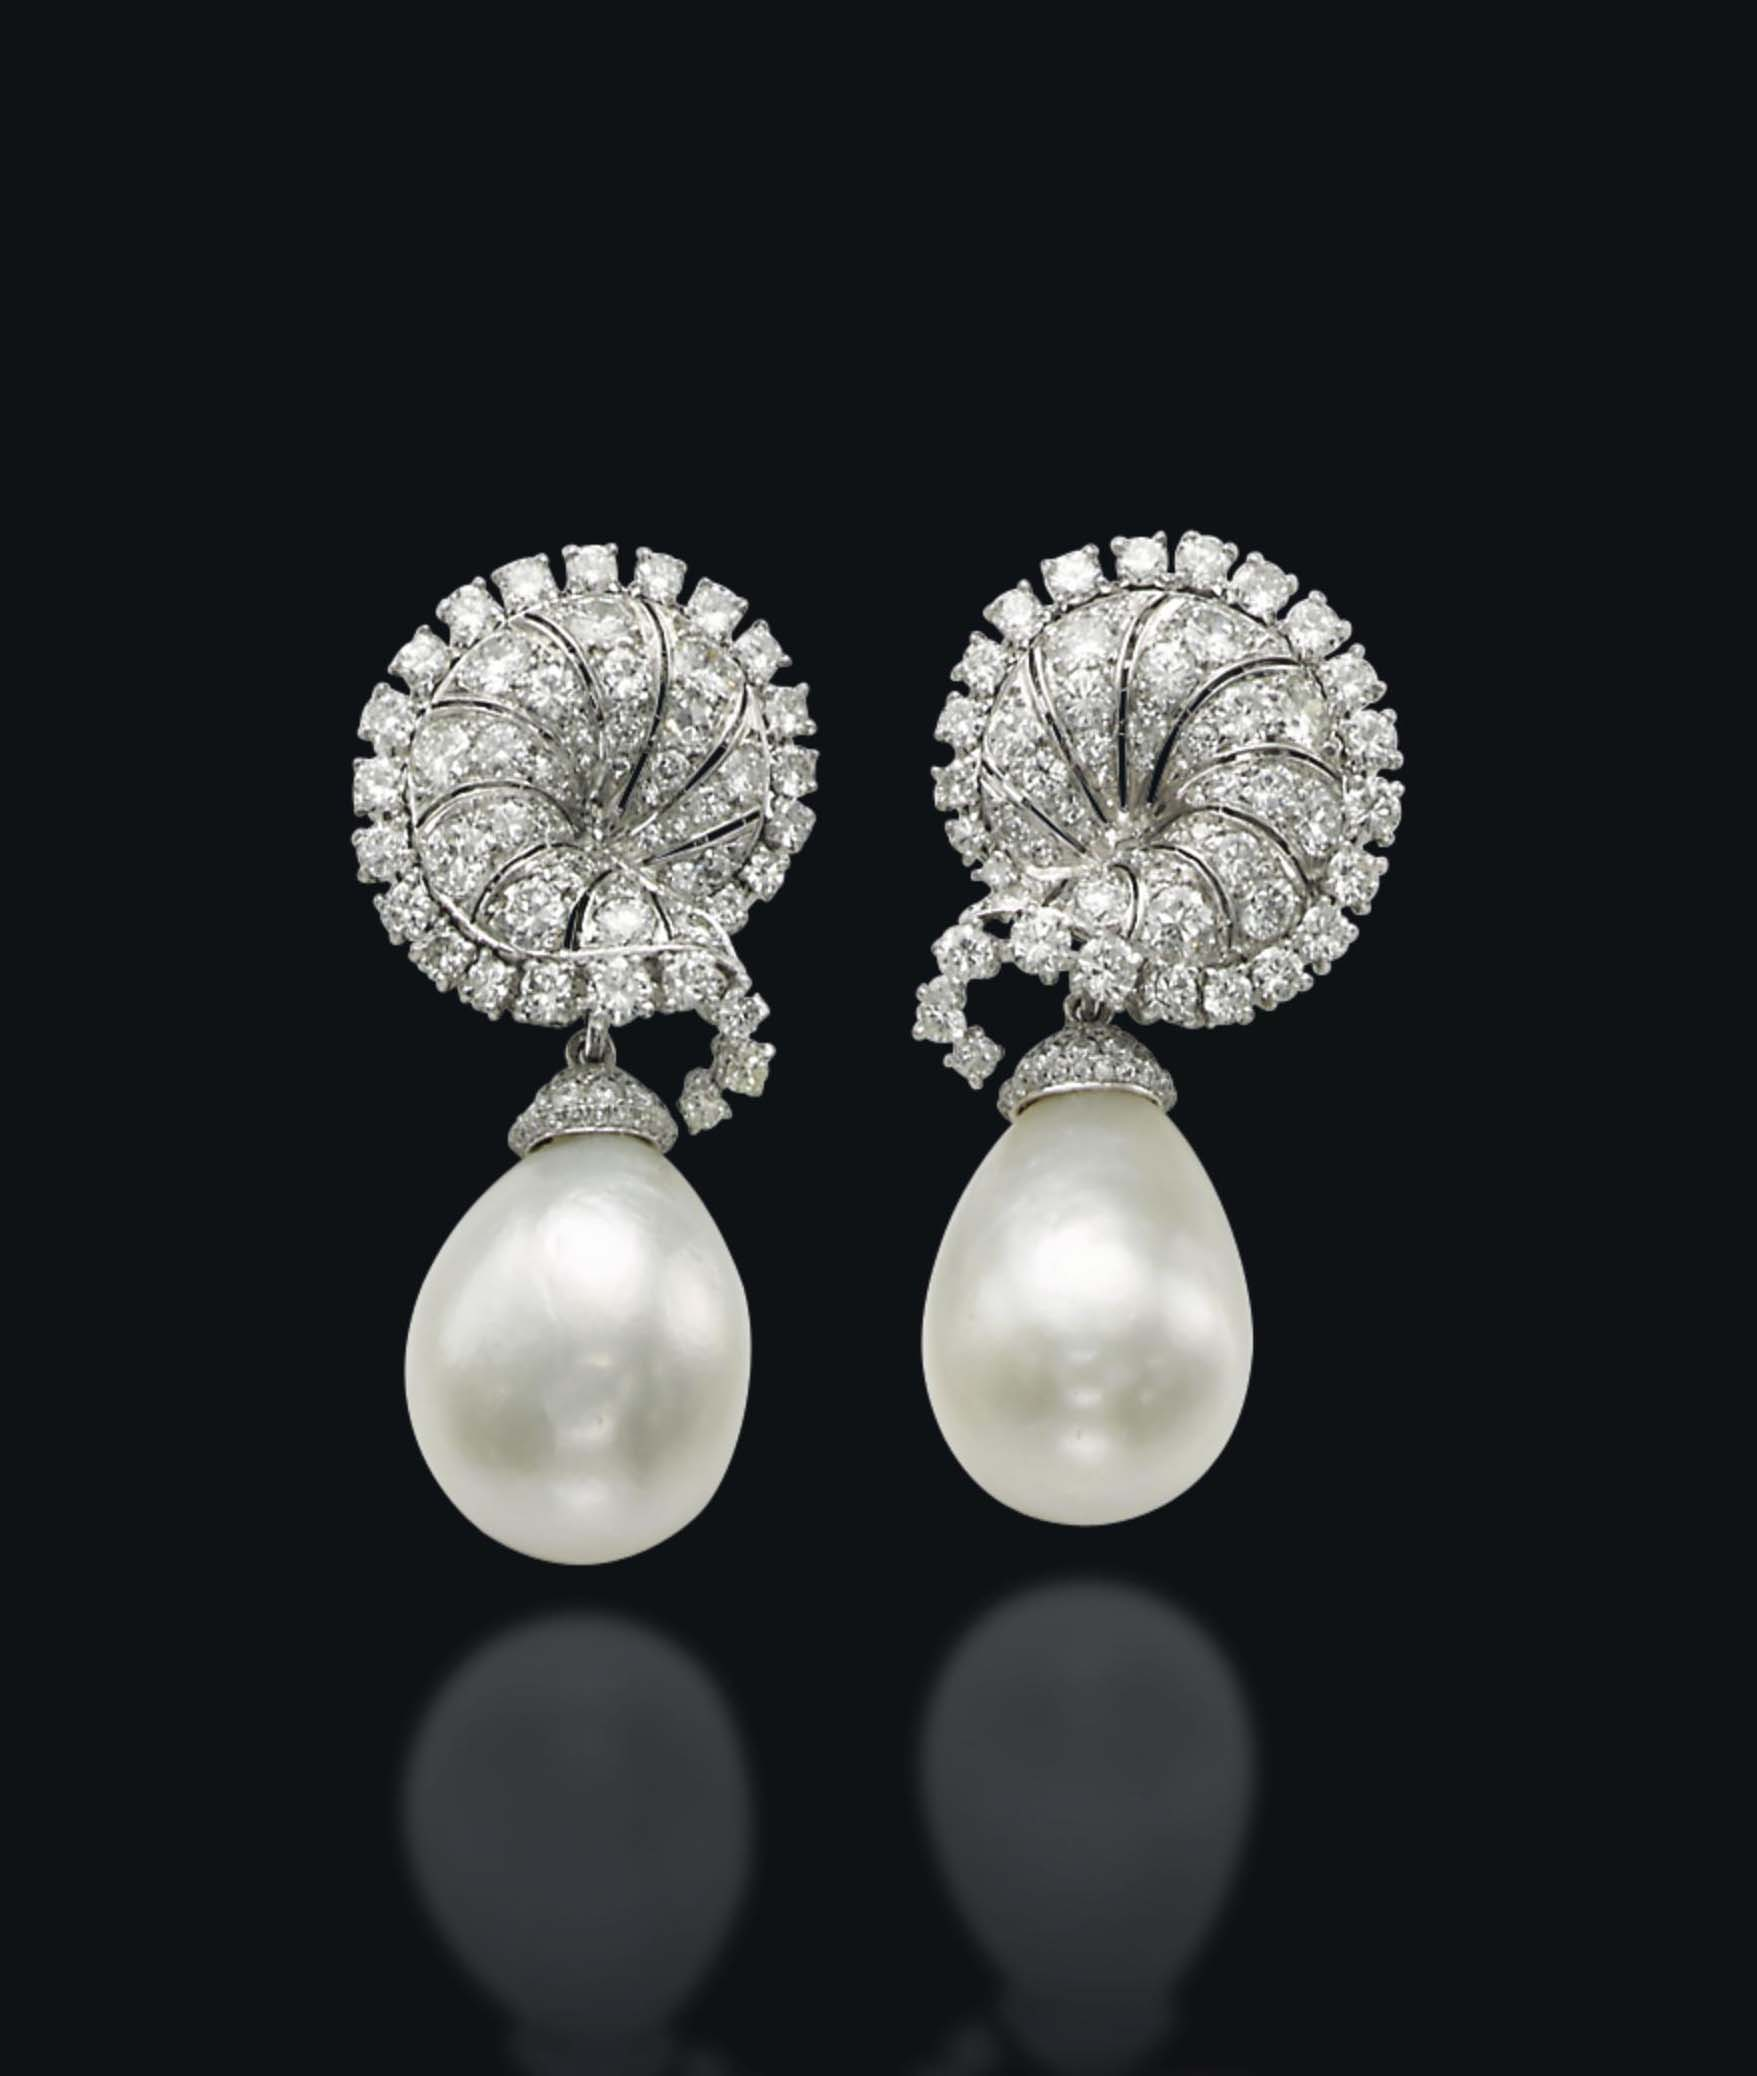 A PAIR OF NATURAL PEARL AND DIAMOND EAR PENDANTS, BY CHAUMET